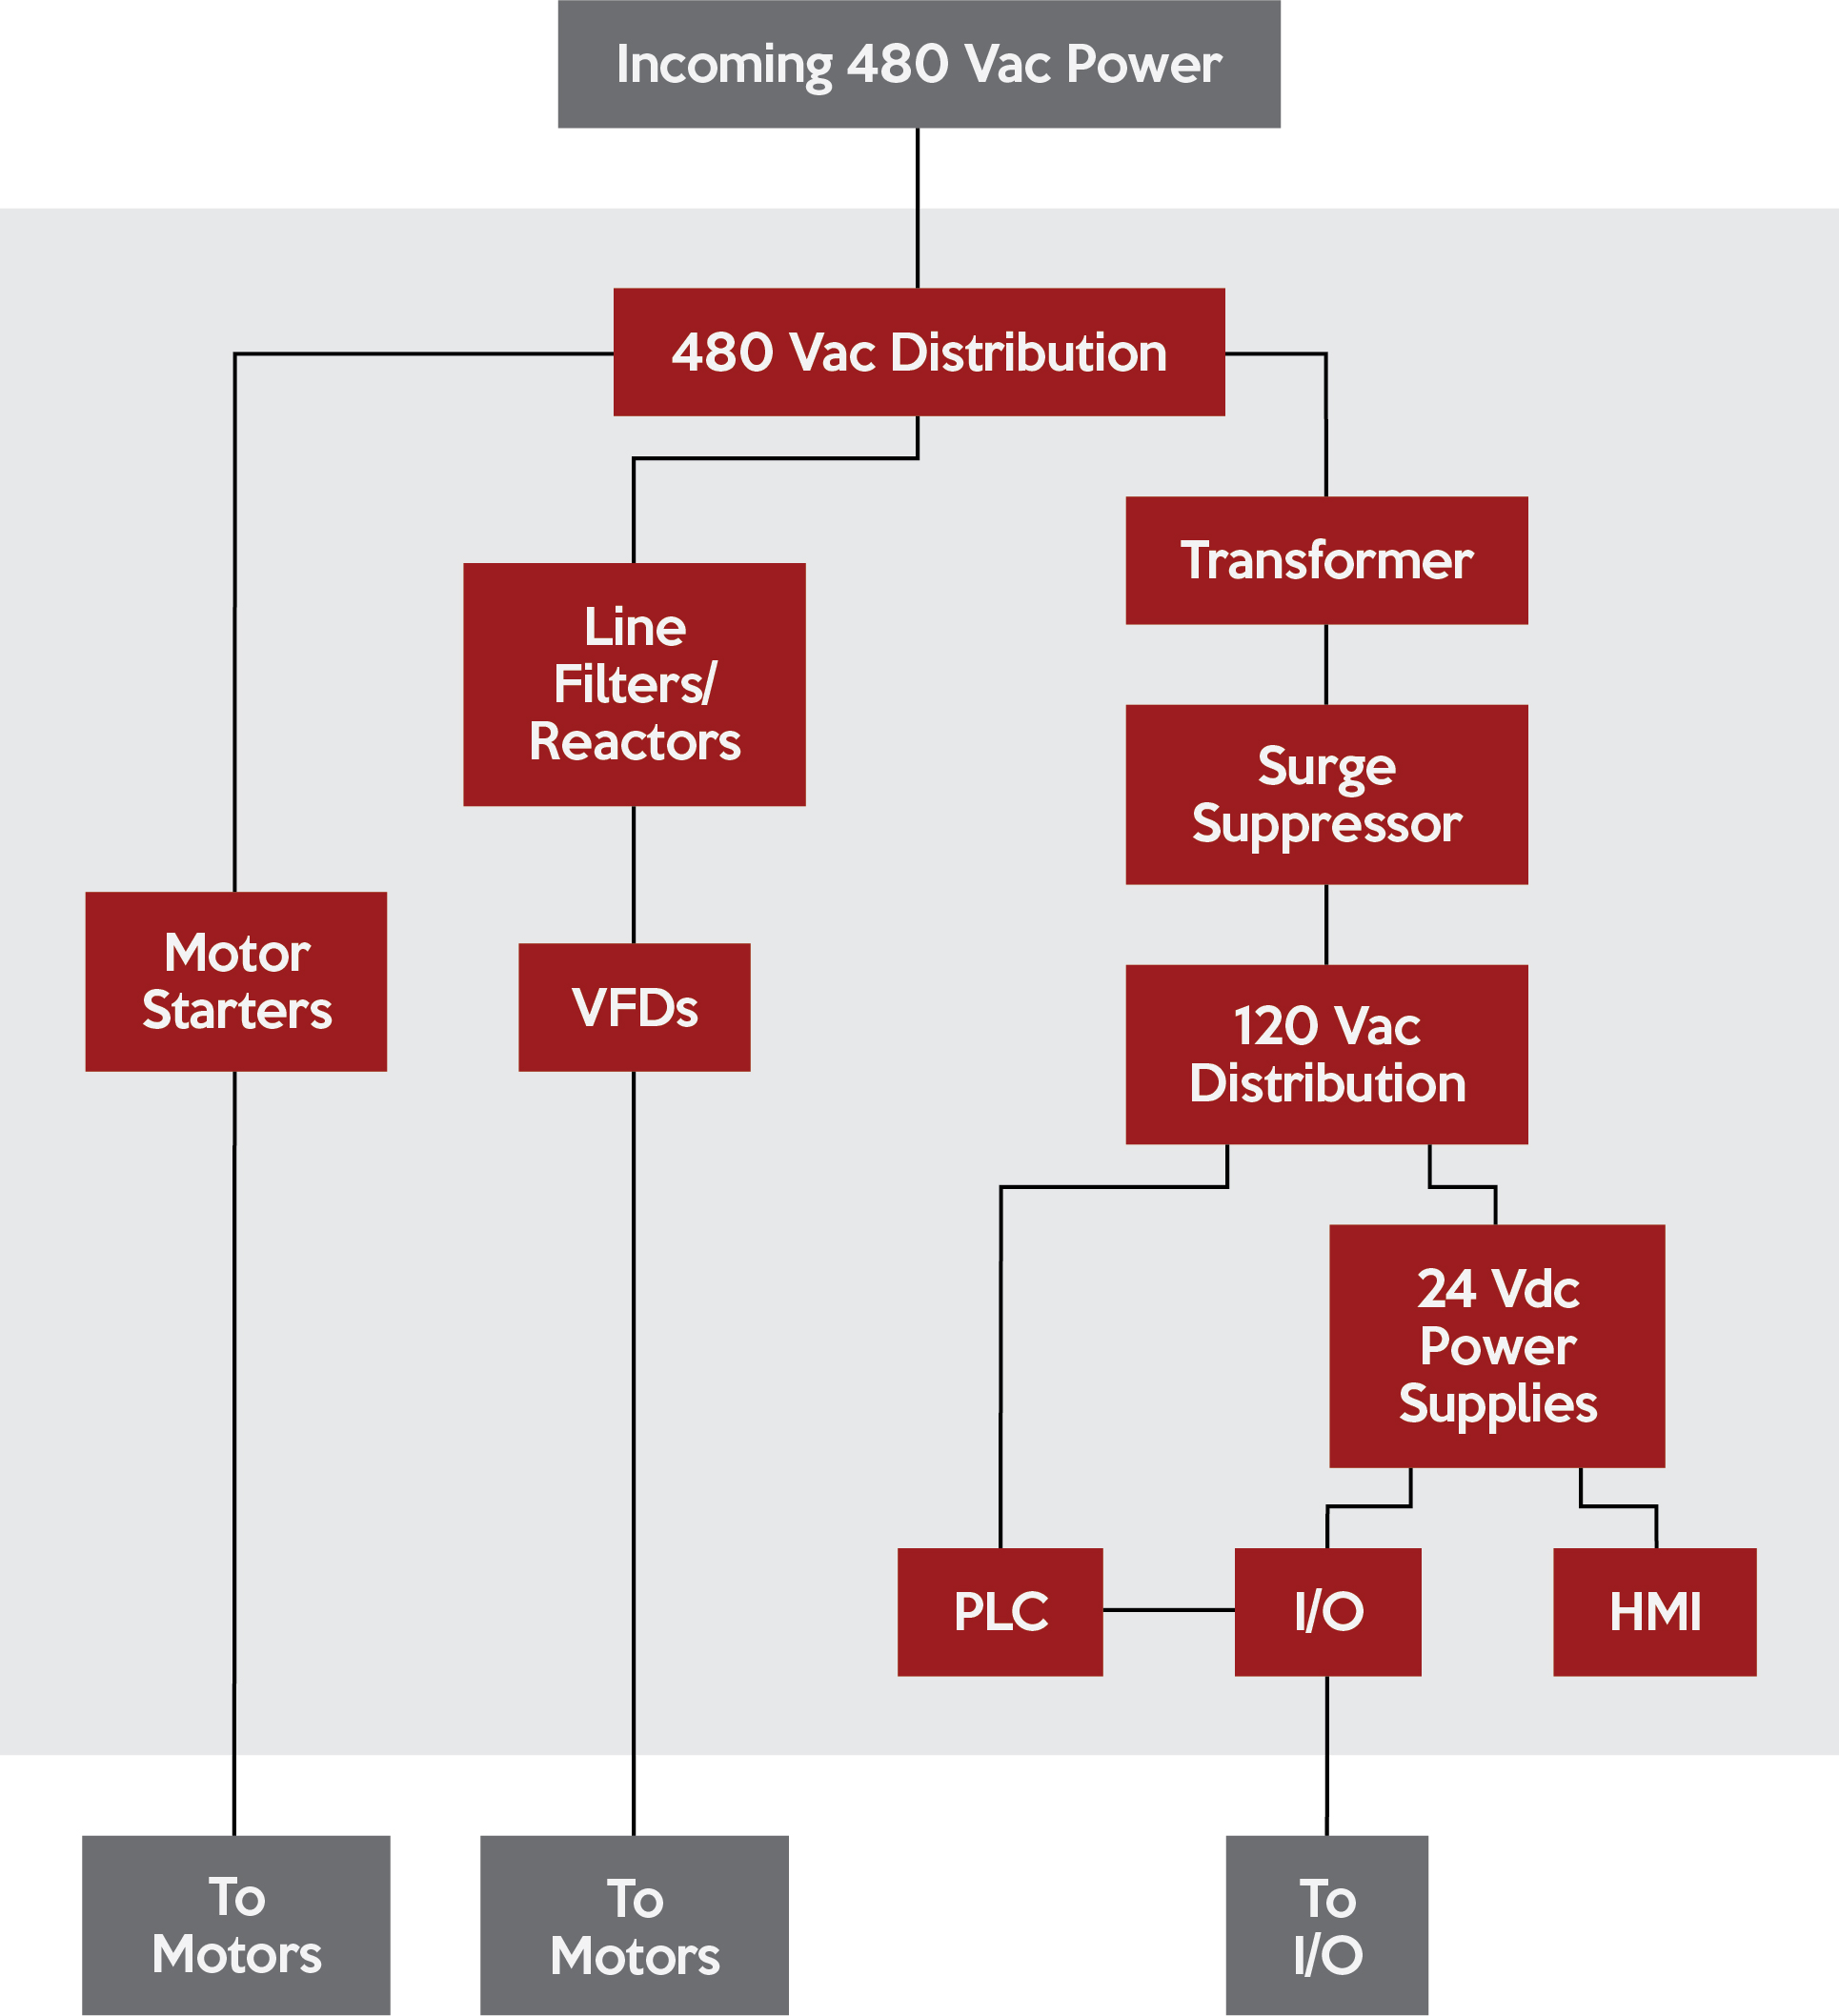 a typical arrangement might look like the chart above where incoming 480  vac power supplies motor starters, vfds (via line filters/reactors),